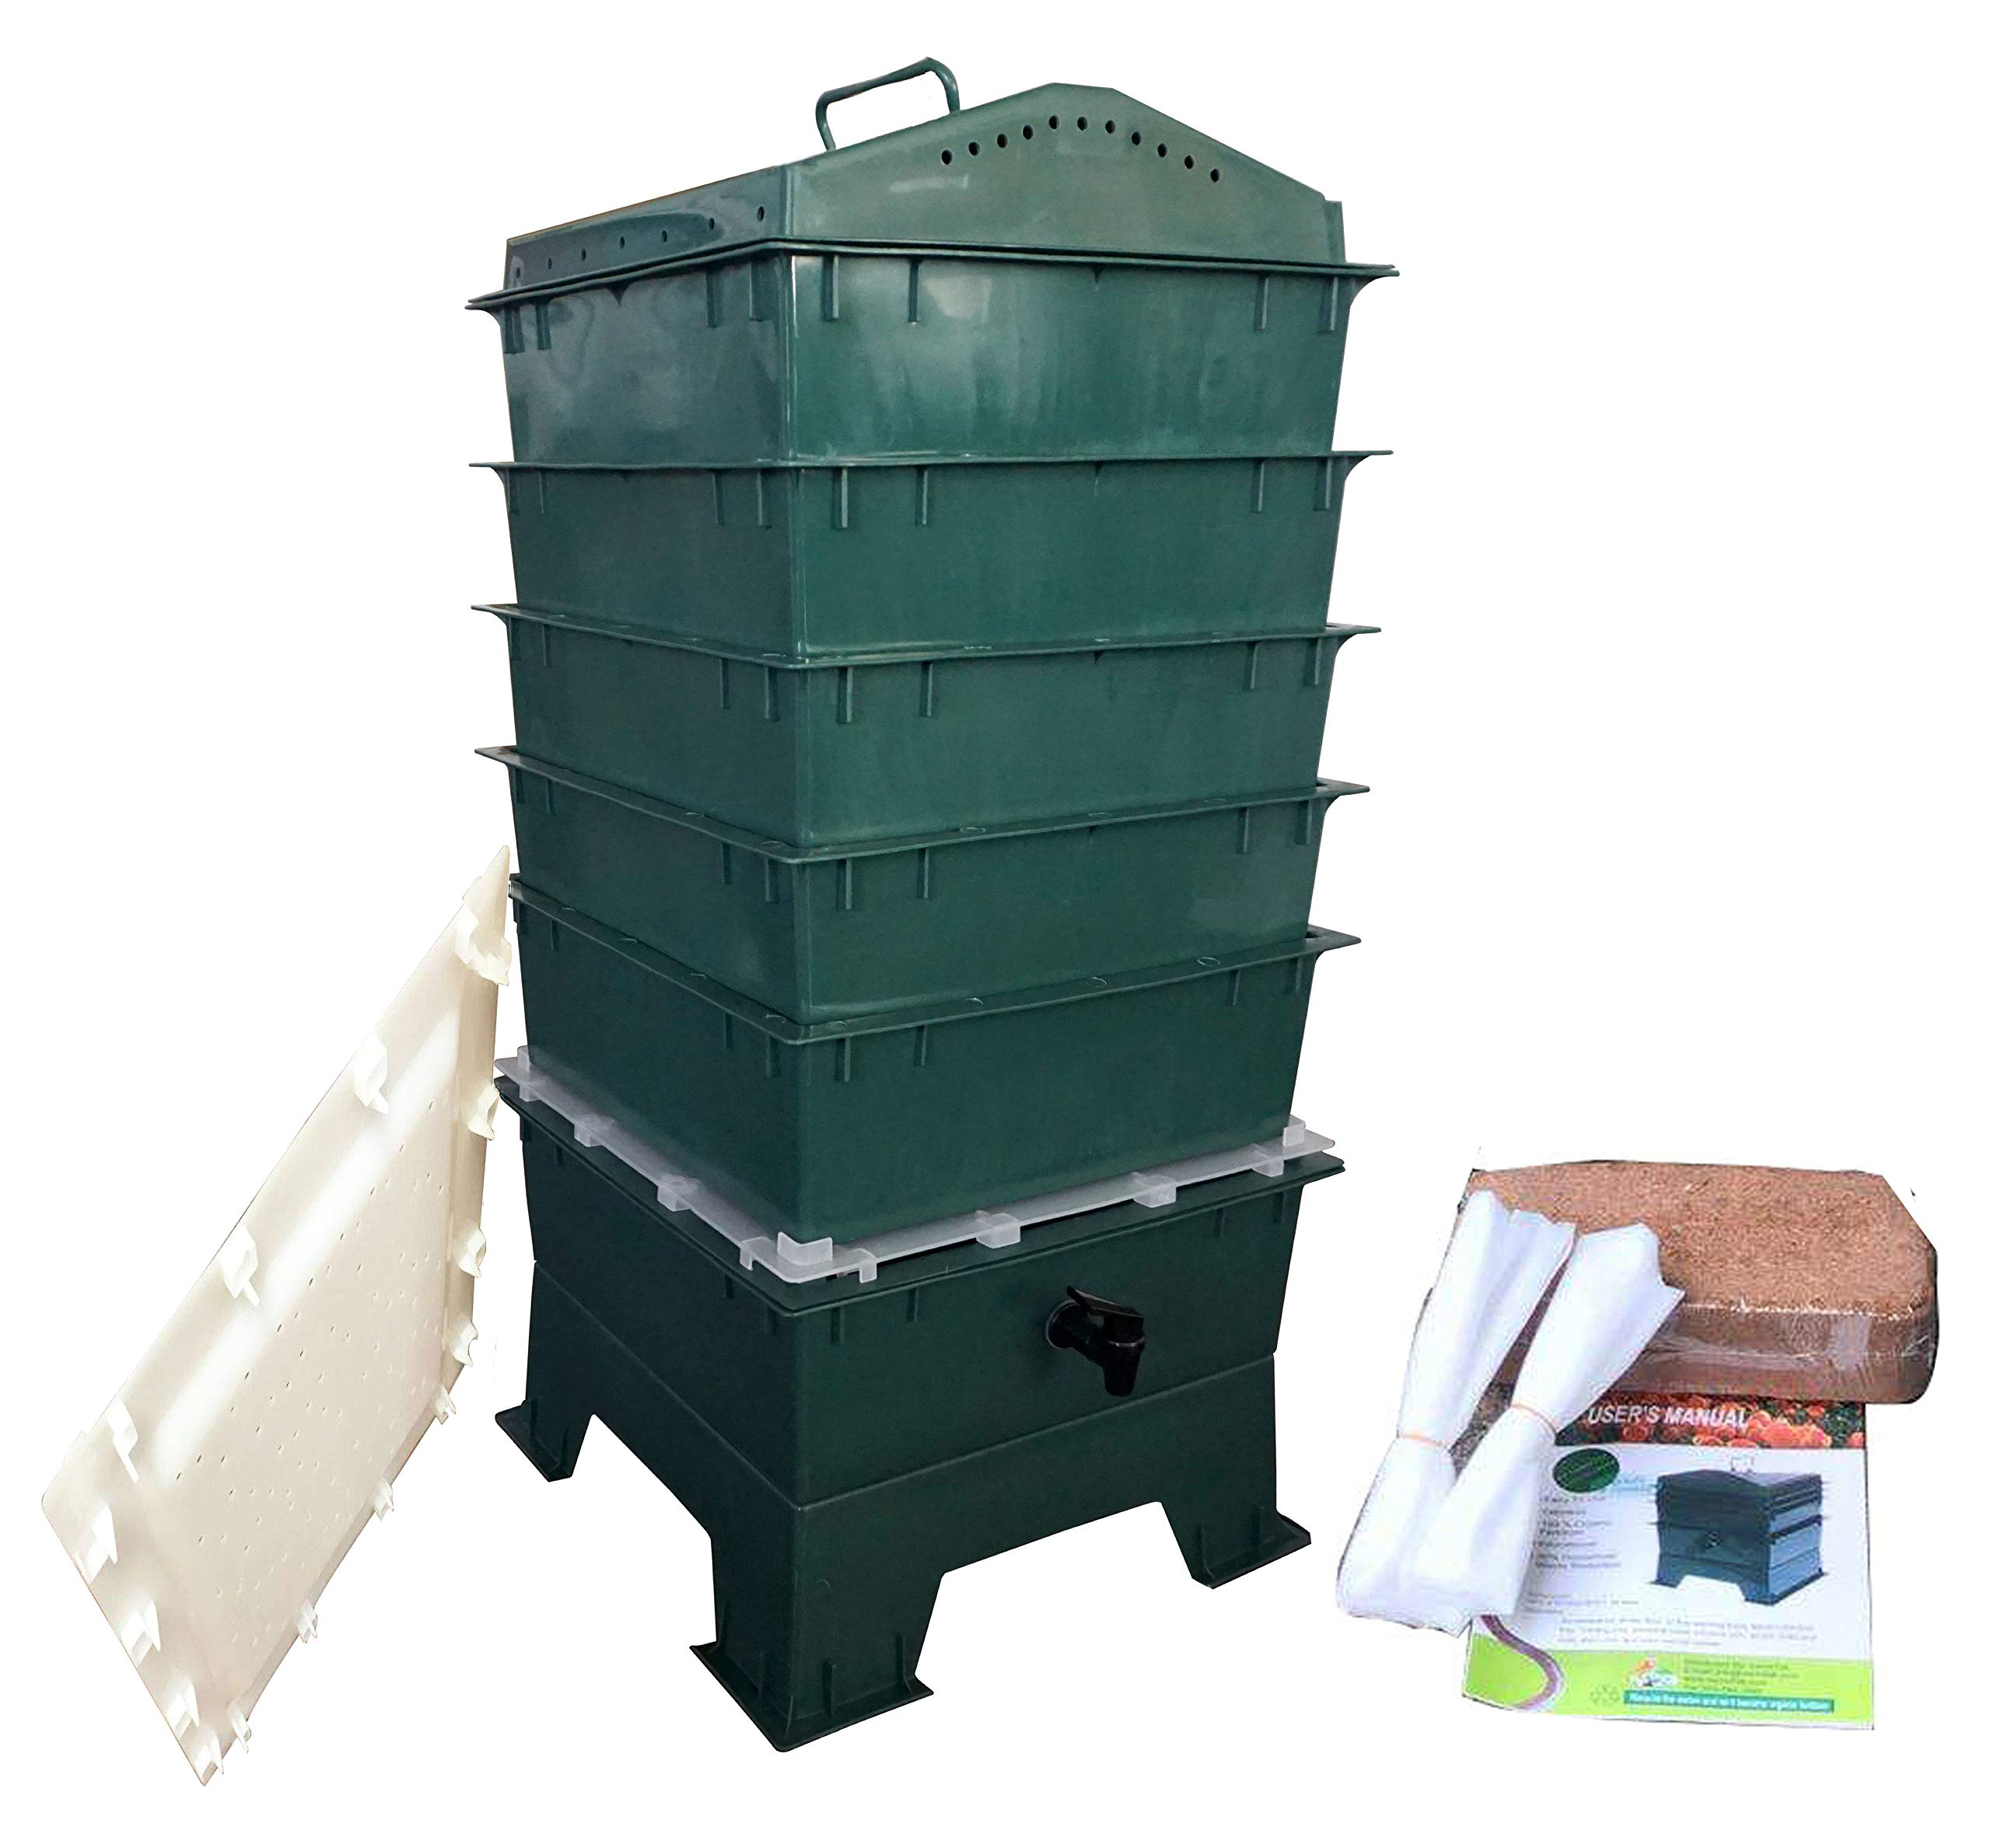 VermiHut 5-Tray Worm Compost Bin, Dark Green with Free Worm-saver Tray product image